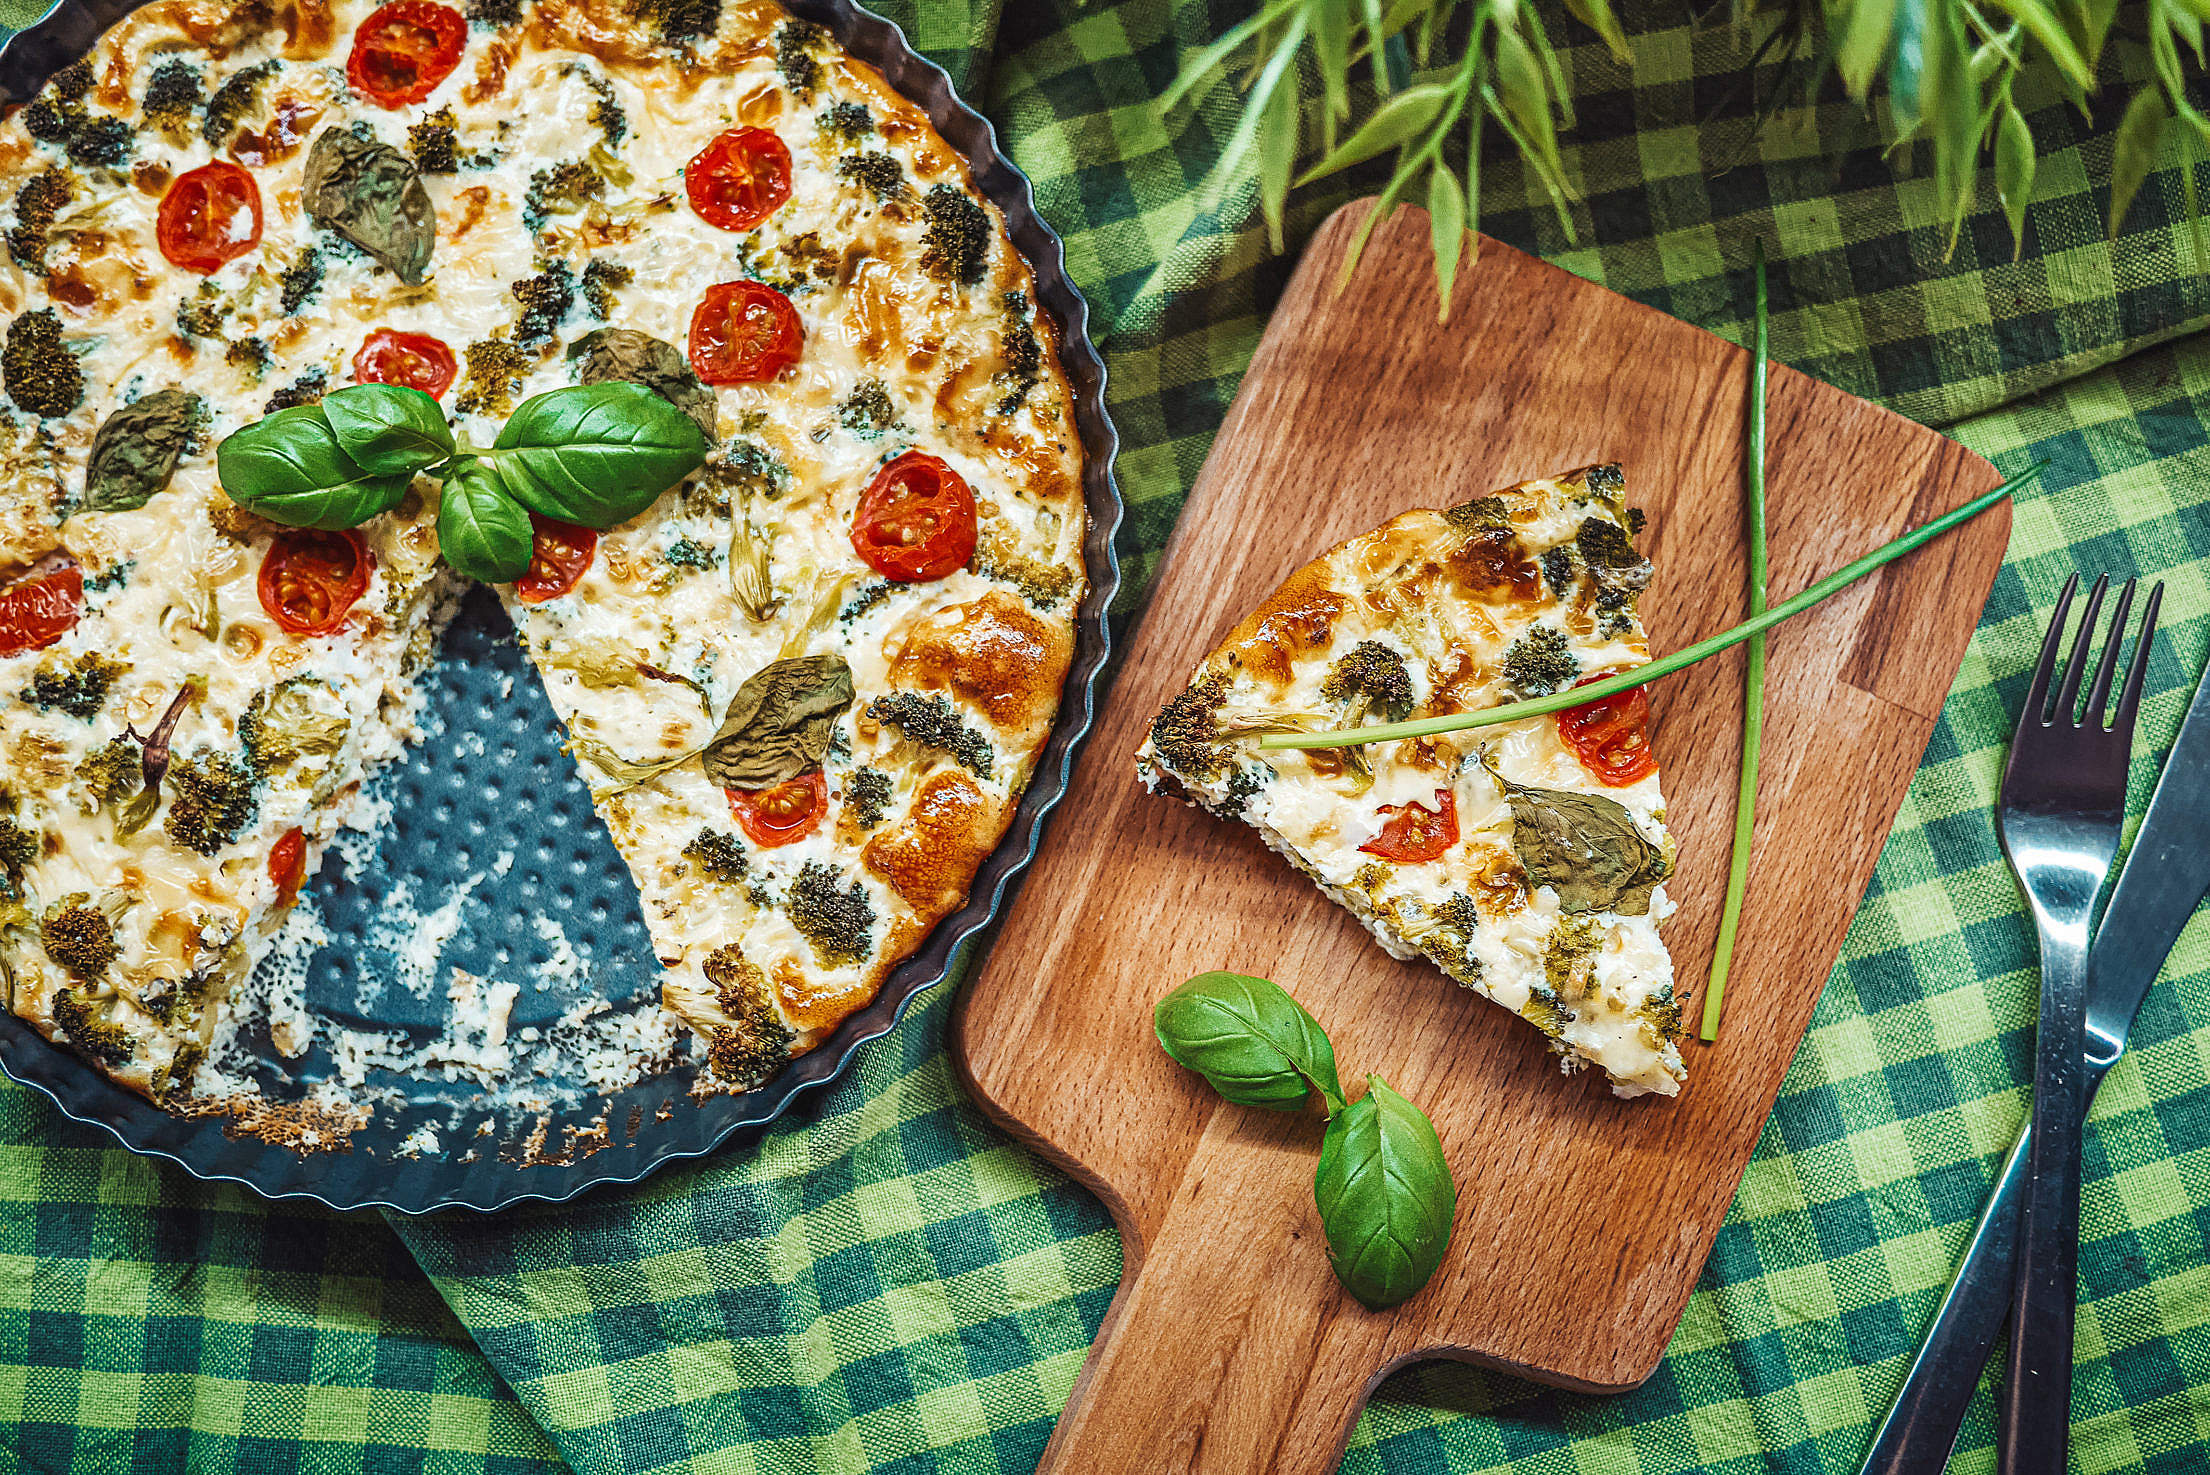 Baked Healthy Fitness Broccoli Pie with Basil Free Stock Photo